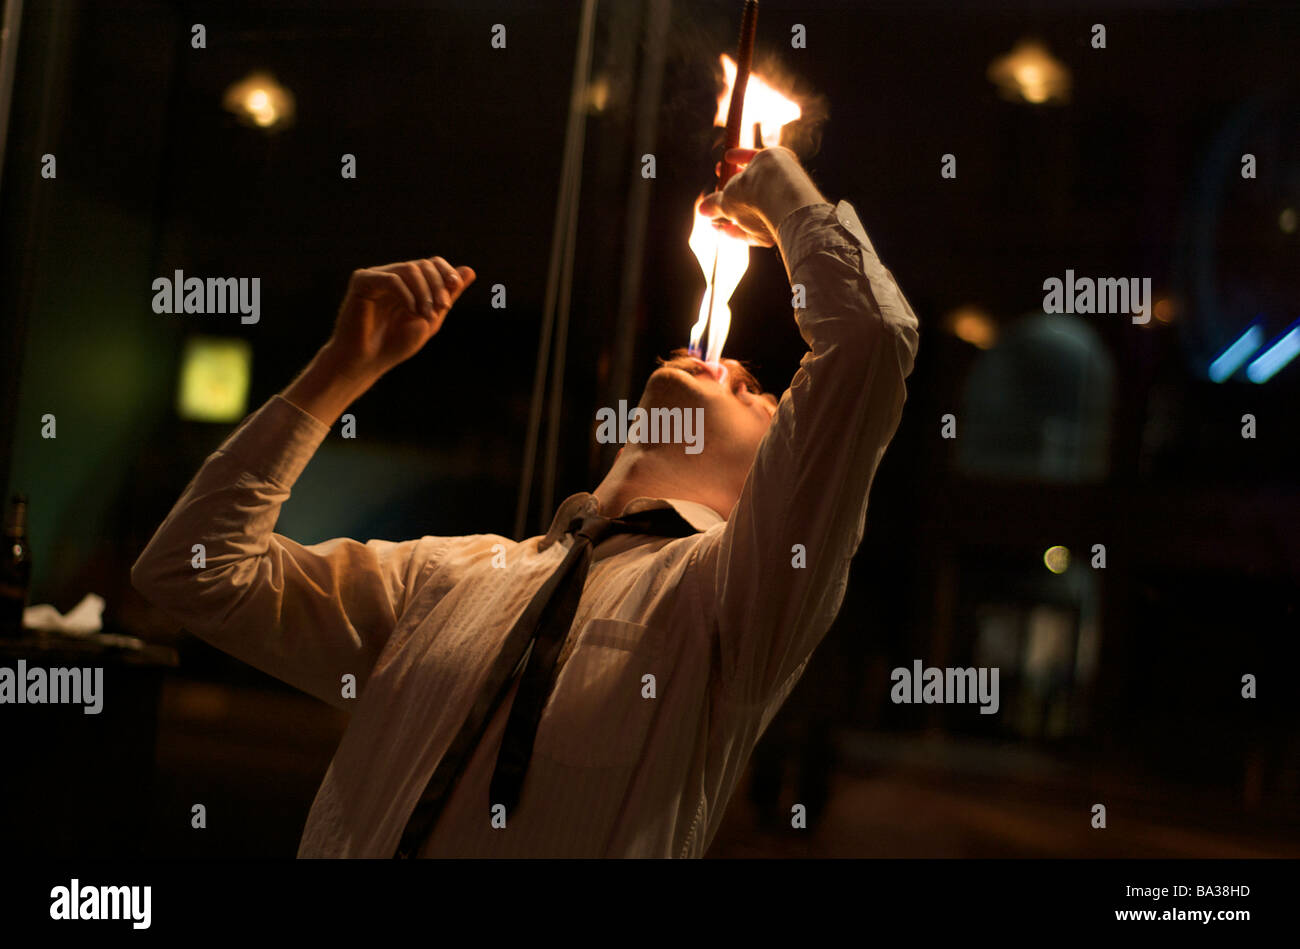 Male Fire Eater Performance in Coney Island, New York (For Editorial Use Only) - Stock Image